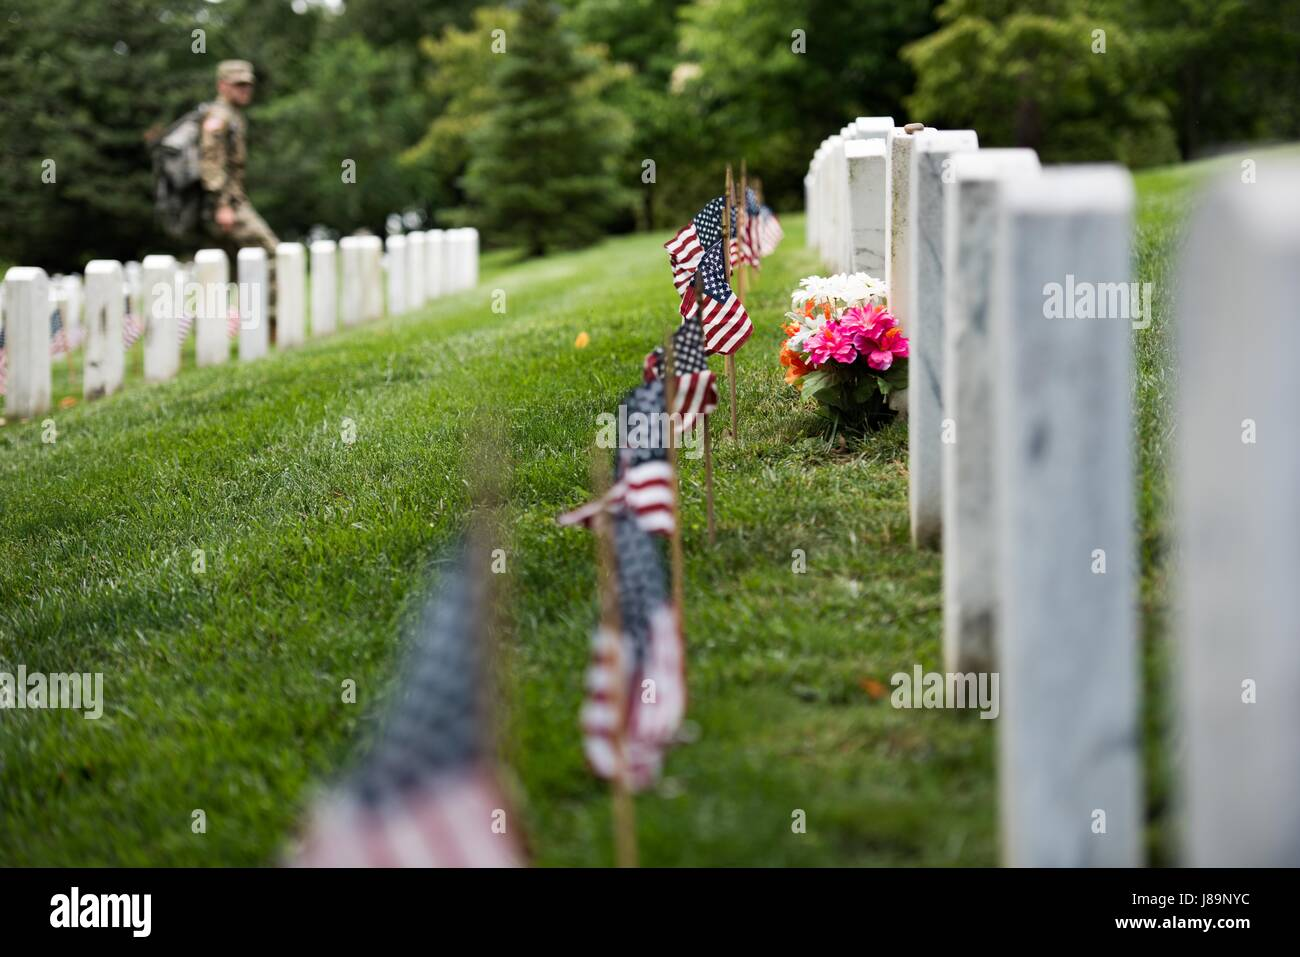 Members of 3d U.S. Infantry Regiment (The Old Guard) place American flags at gravesites in Arlington National Cemetery - Stock Image